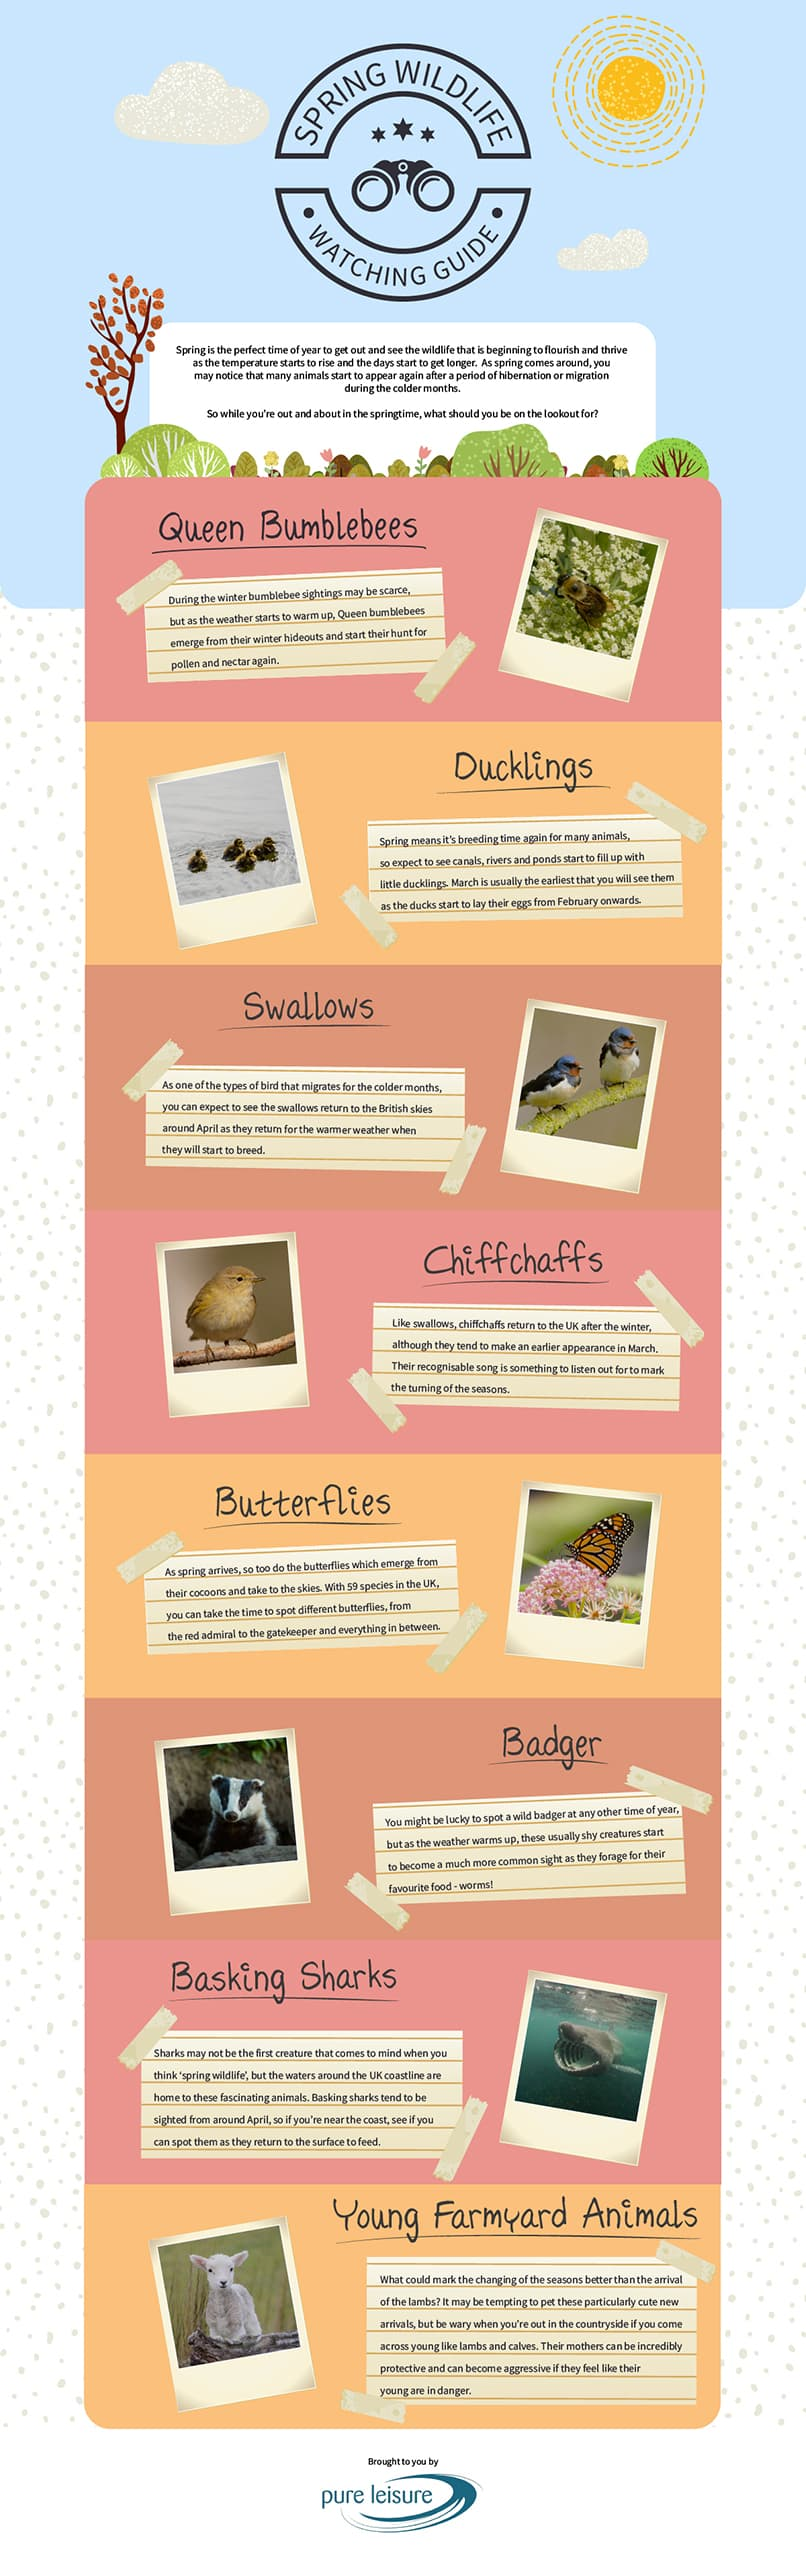 Spring Wildlife Watching Guide Infographics by Pure Leisure